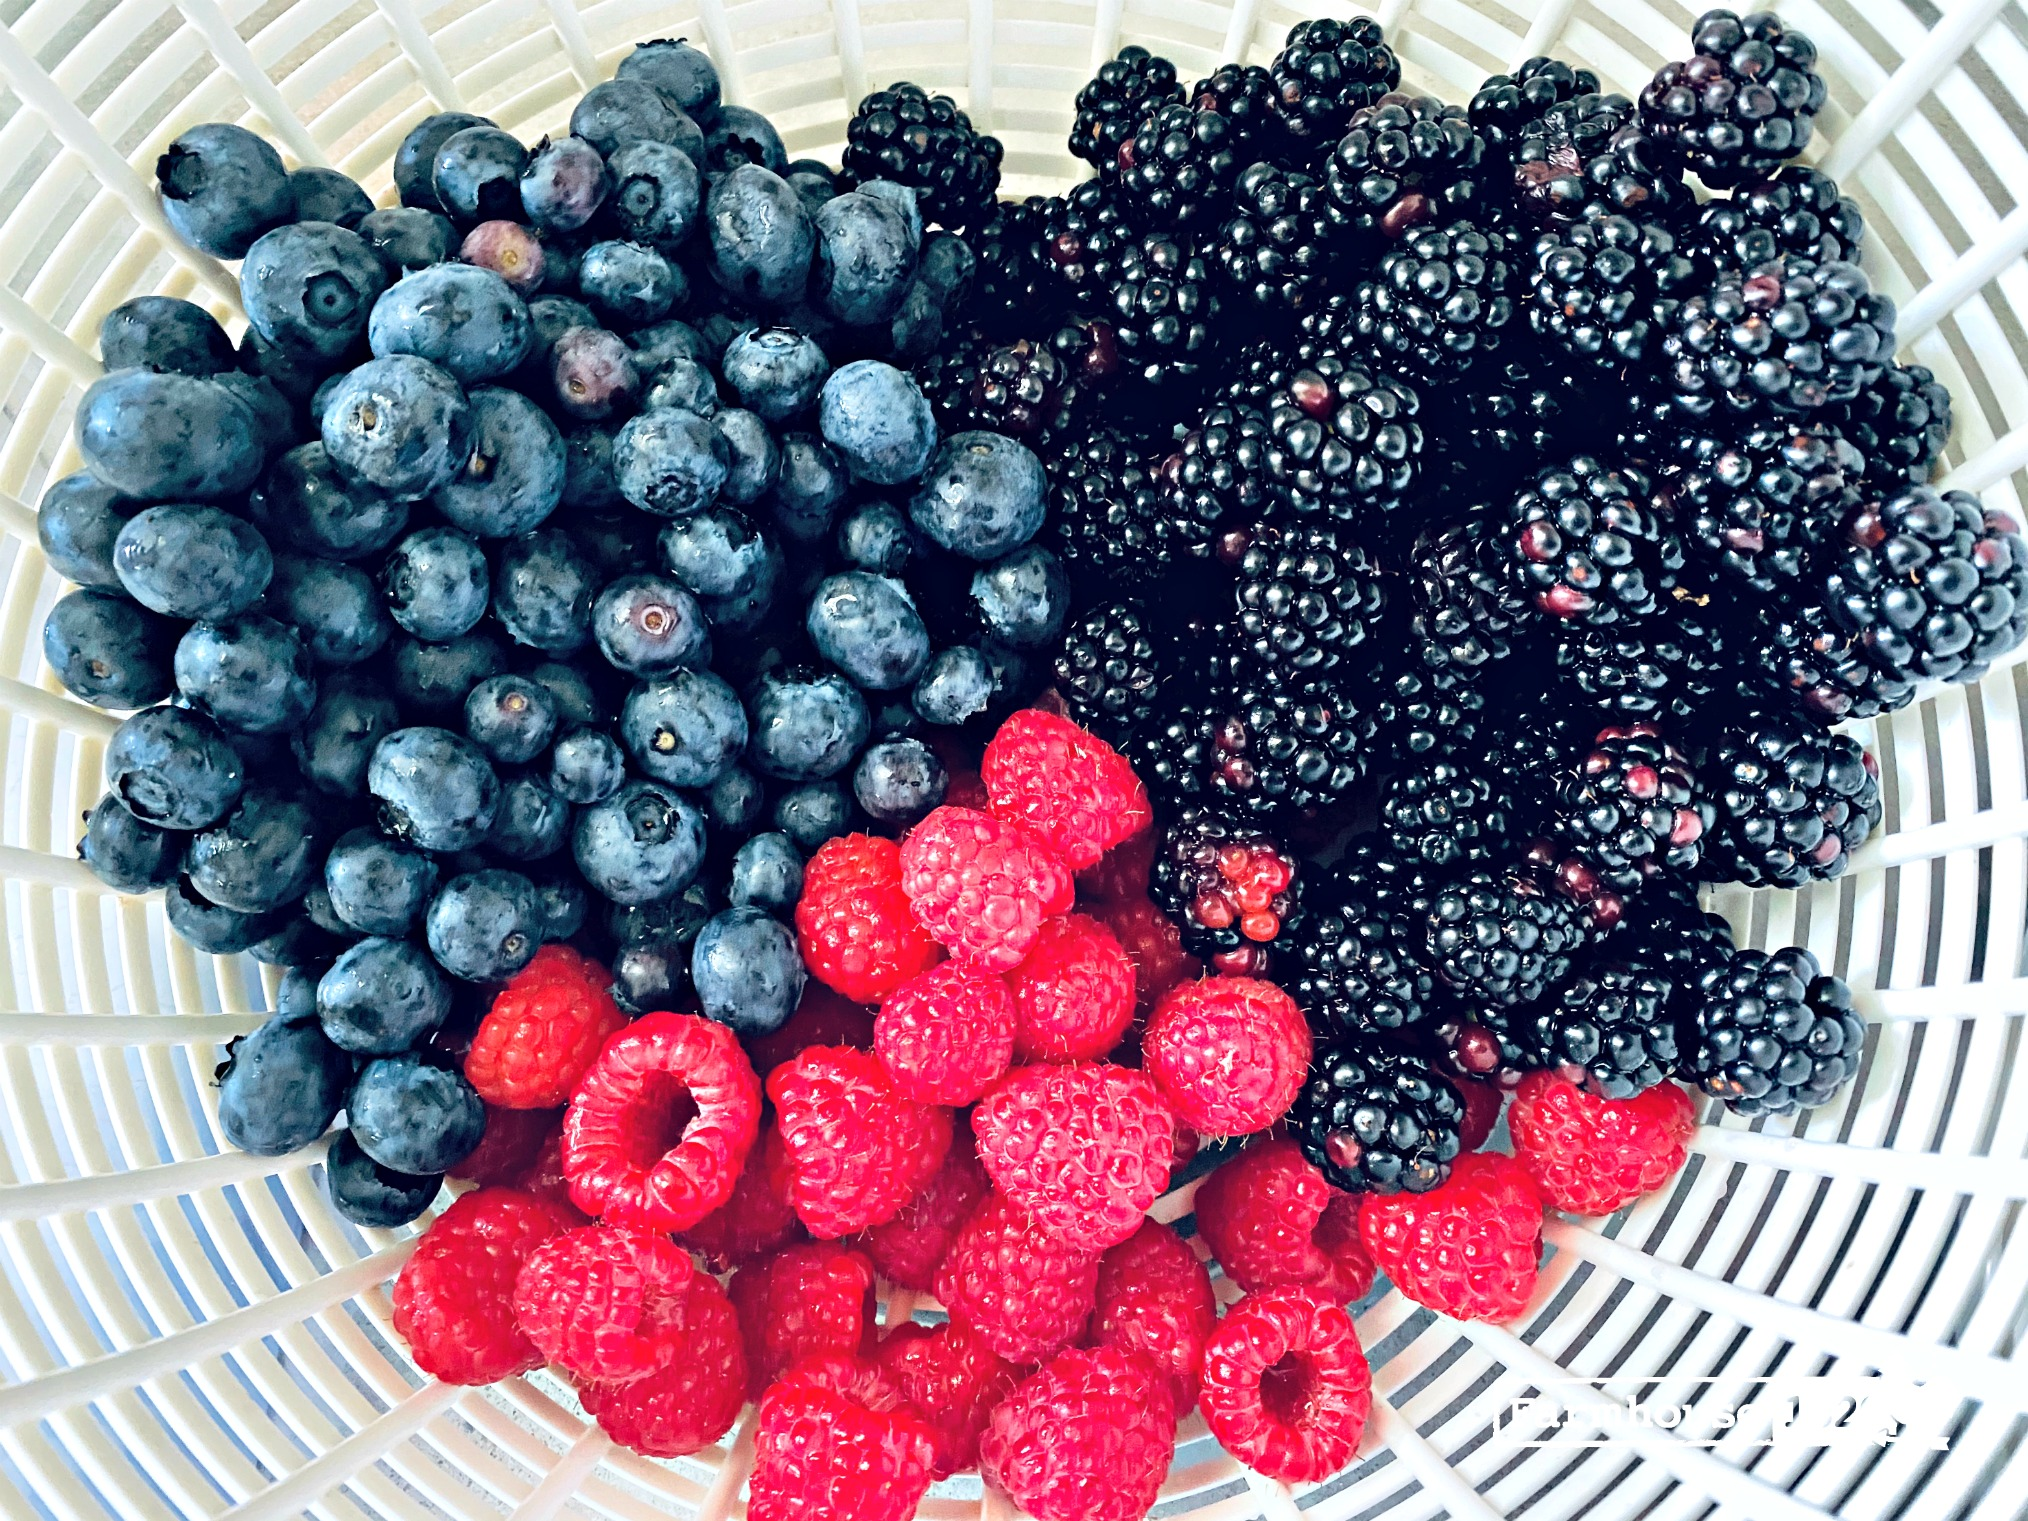 quick tip - how to wash fresh berries